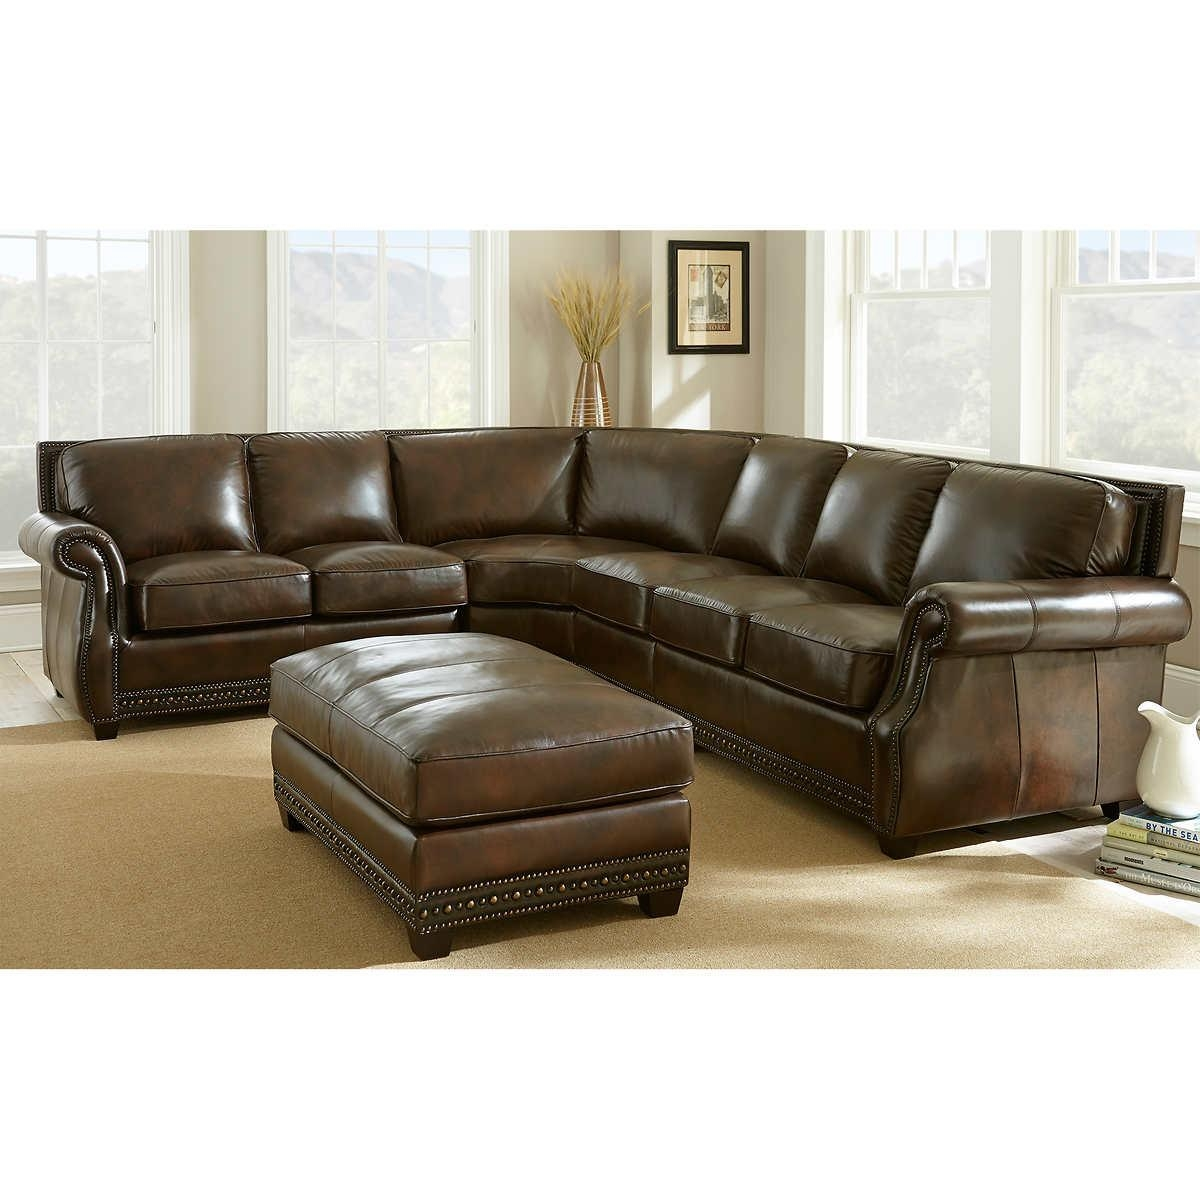 Epic Costco Leather Sectional Sofa 73 With Additional Vintage With Regard To Vintage Leather Sectional Sofas (Image 2 of 20)